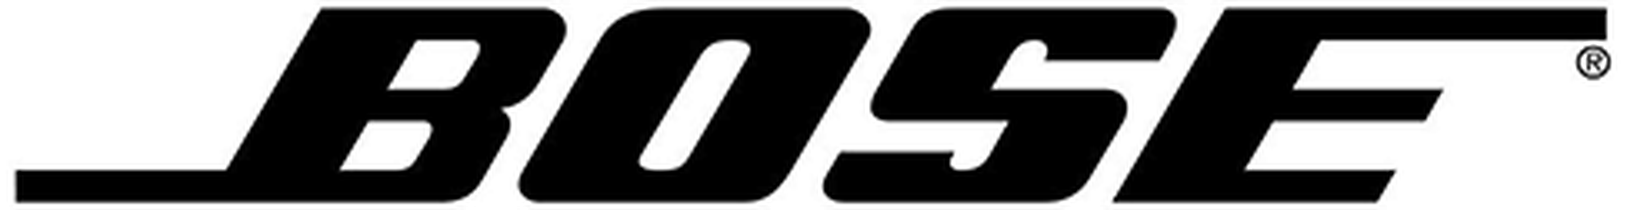 Bose.com Promo Codes: Up to 53% off